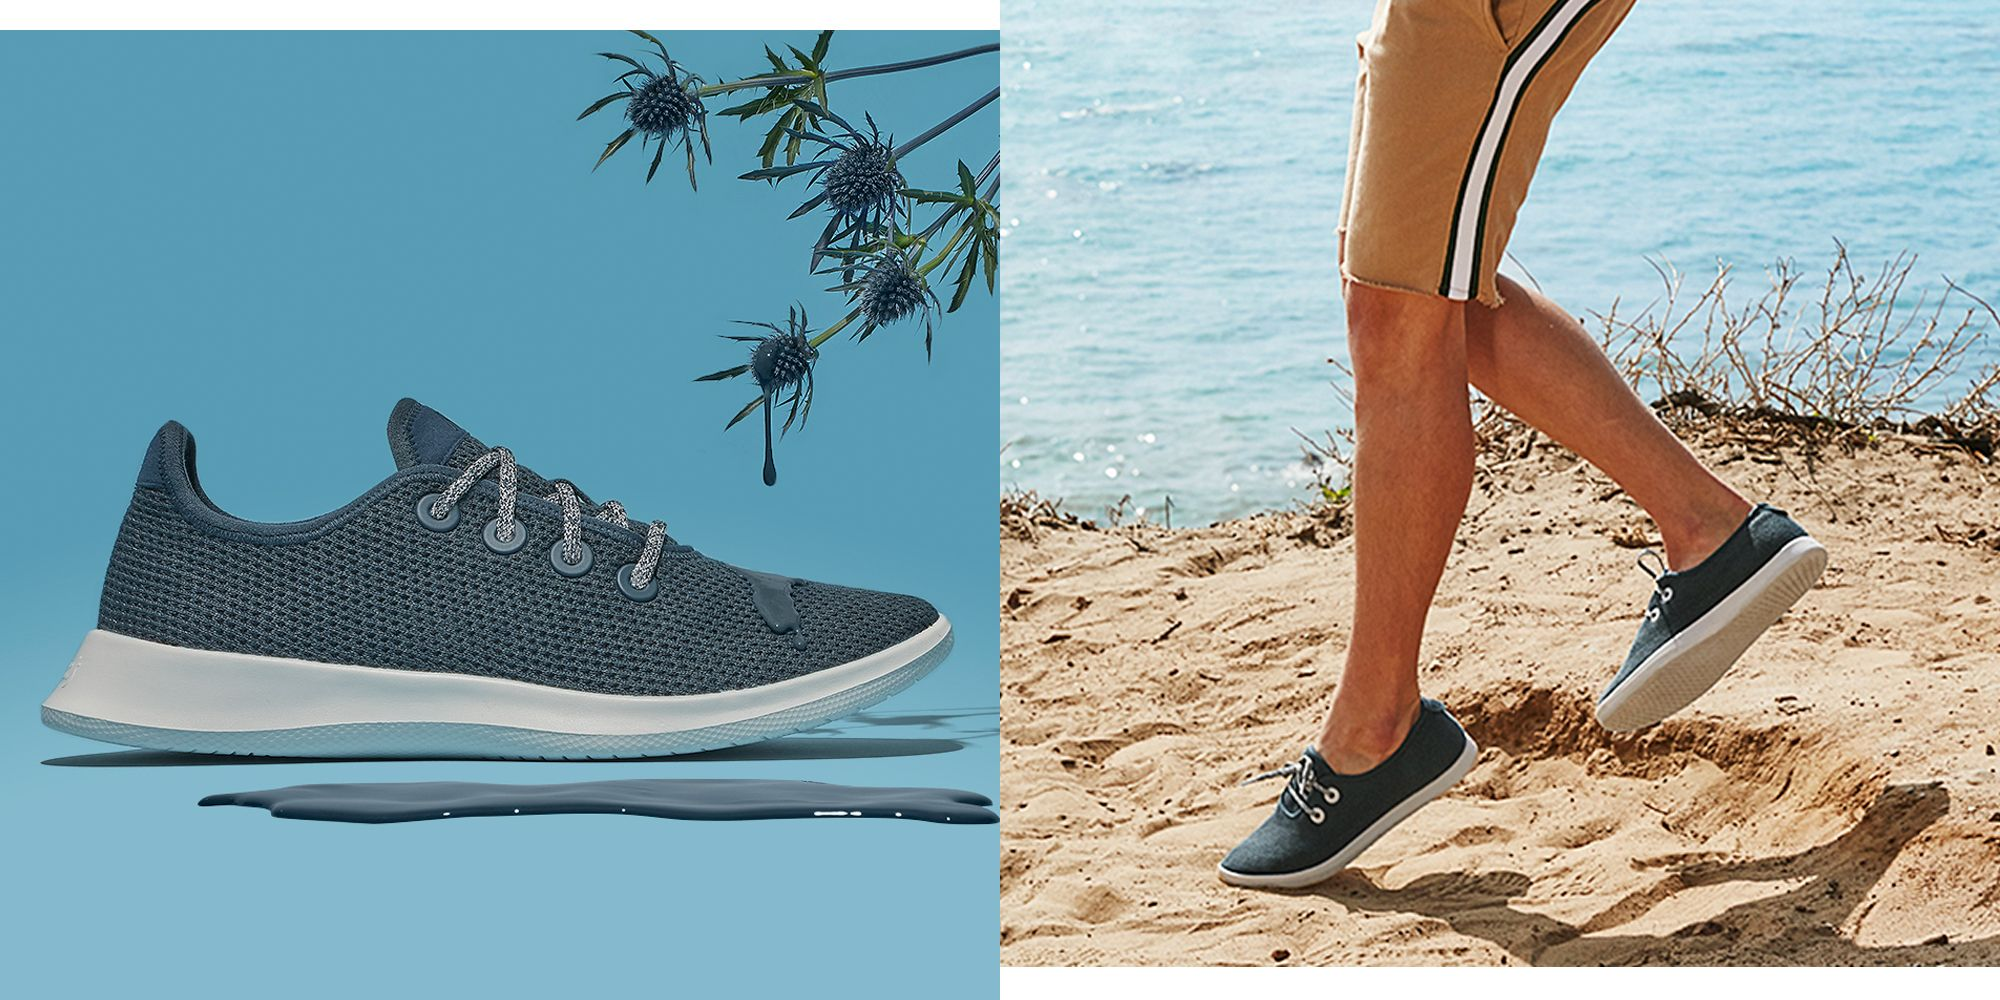 allbirds new sneakers are made from eucalyptus trees